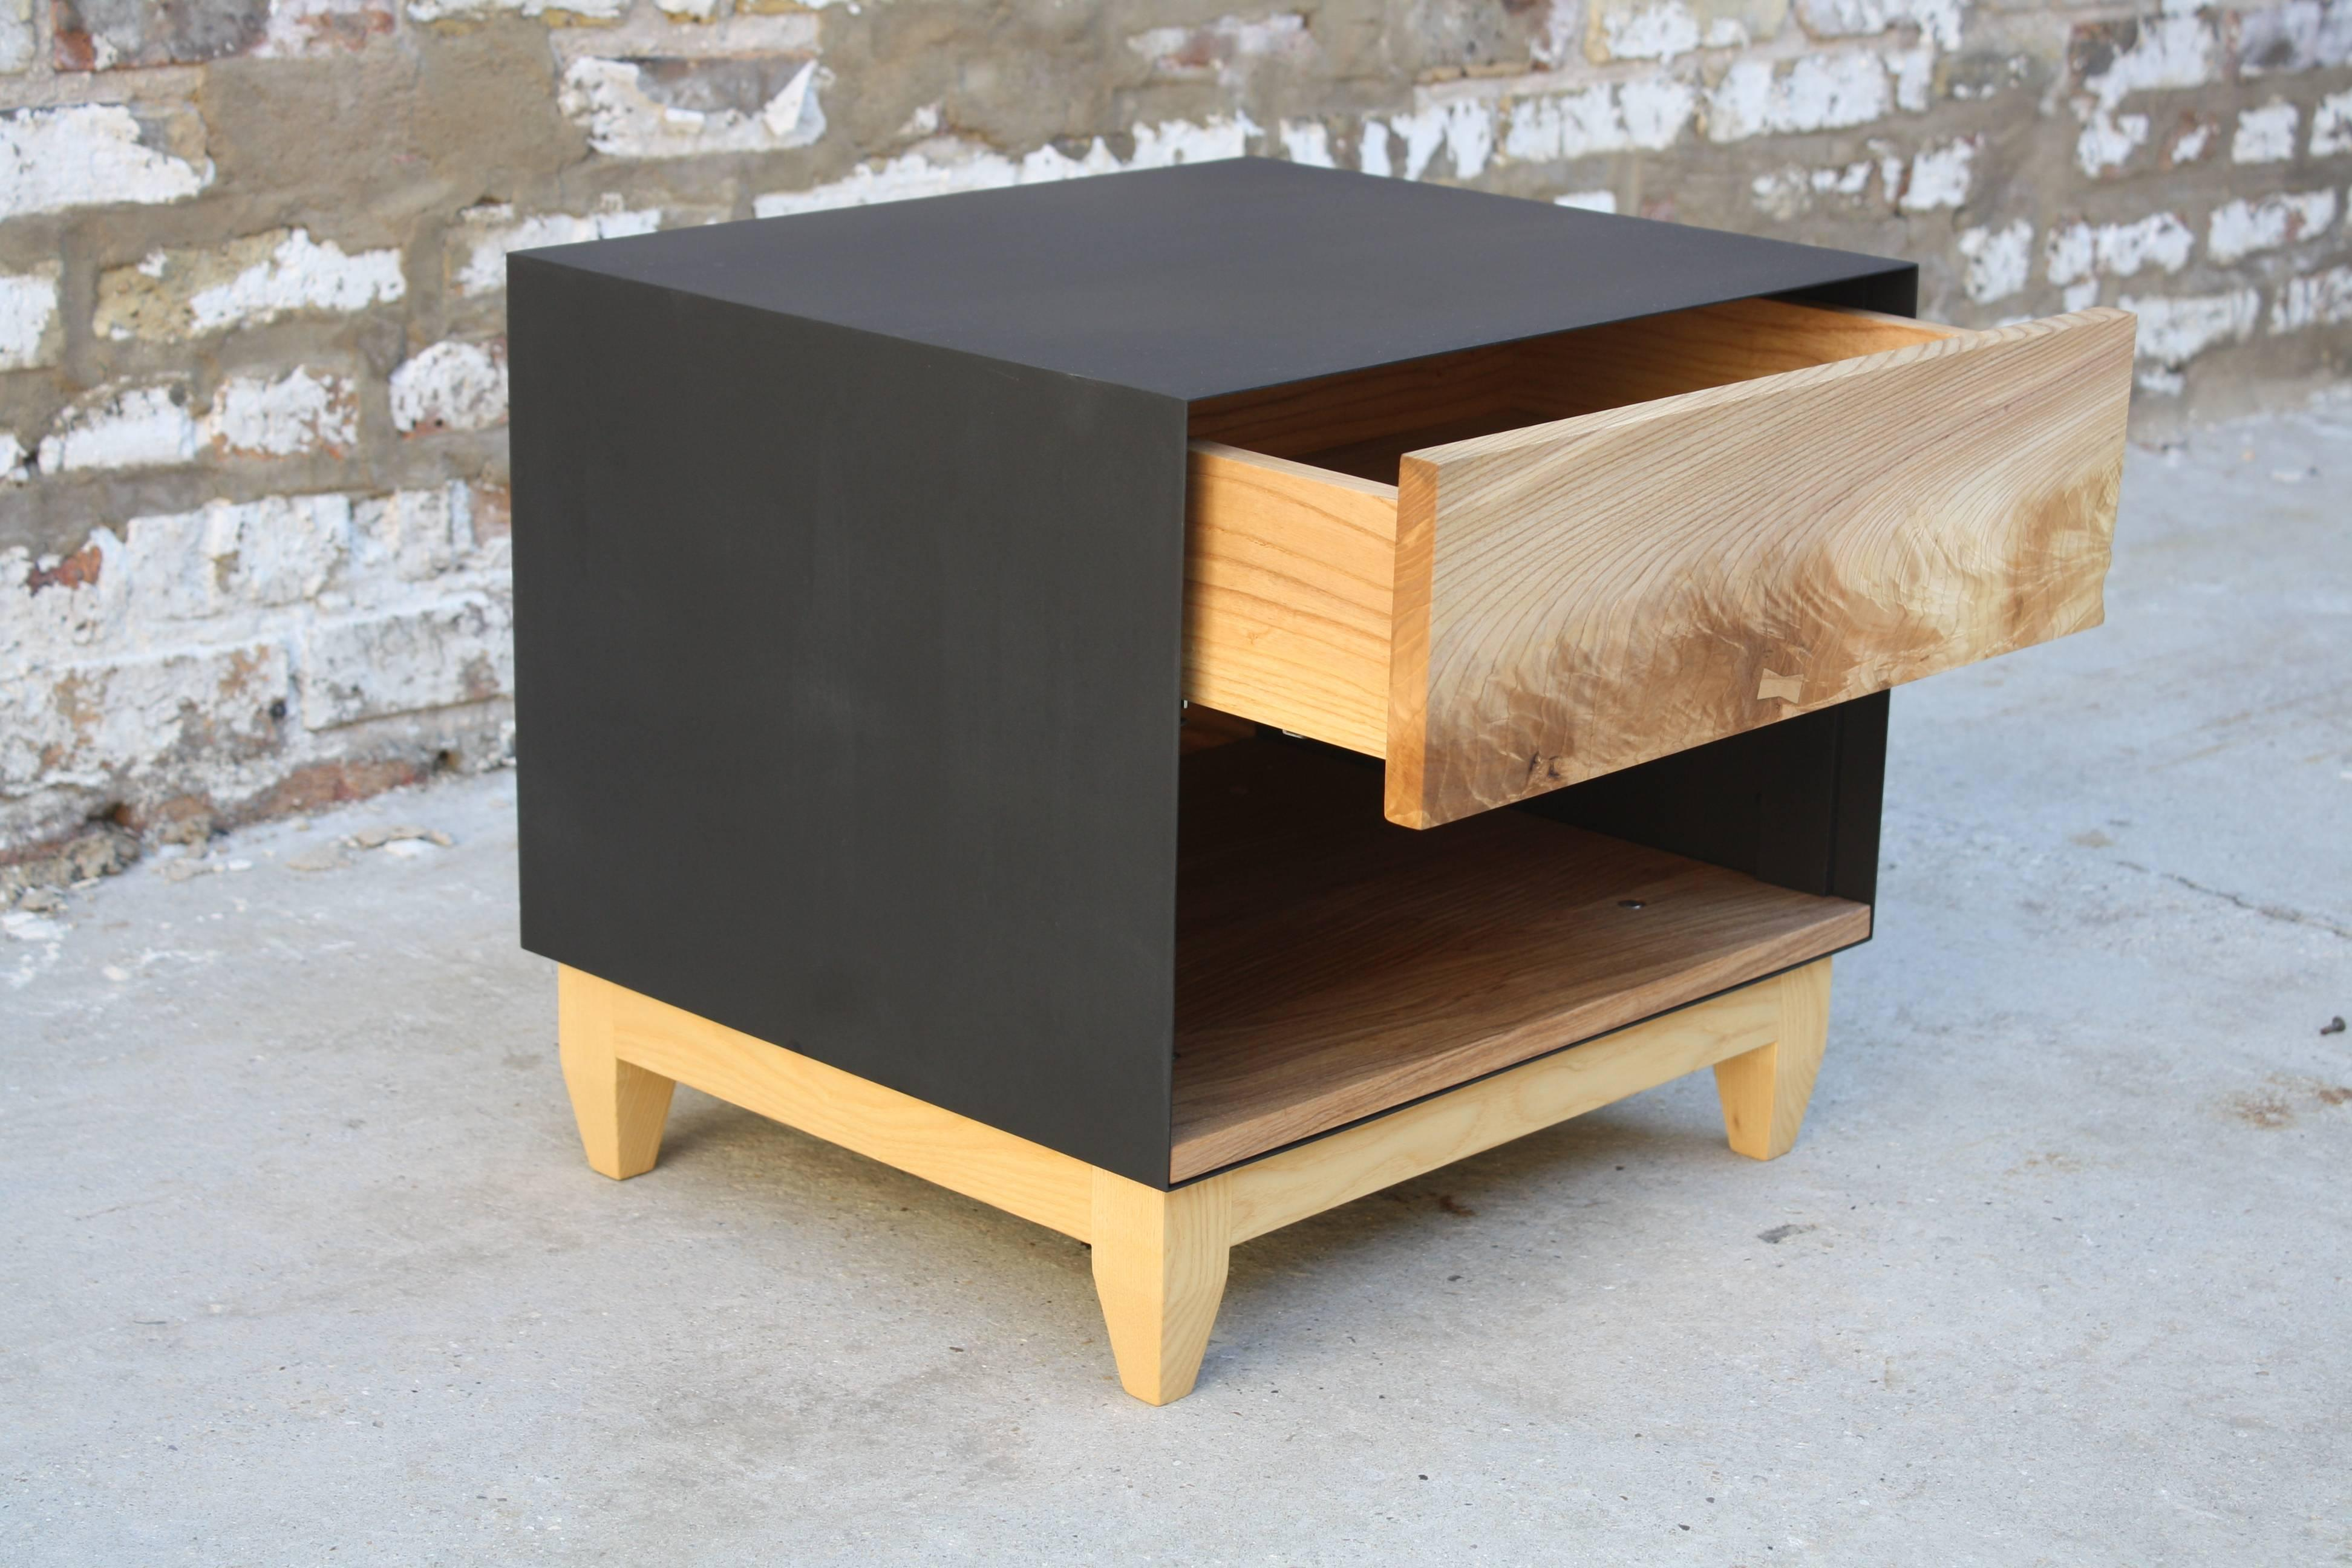 American Oxide, A Handmade Wood And Metal Nightstand Or End Table By Laylo  Studio For